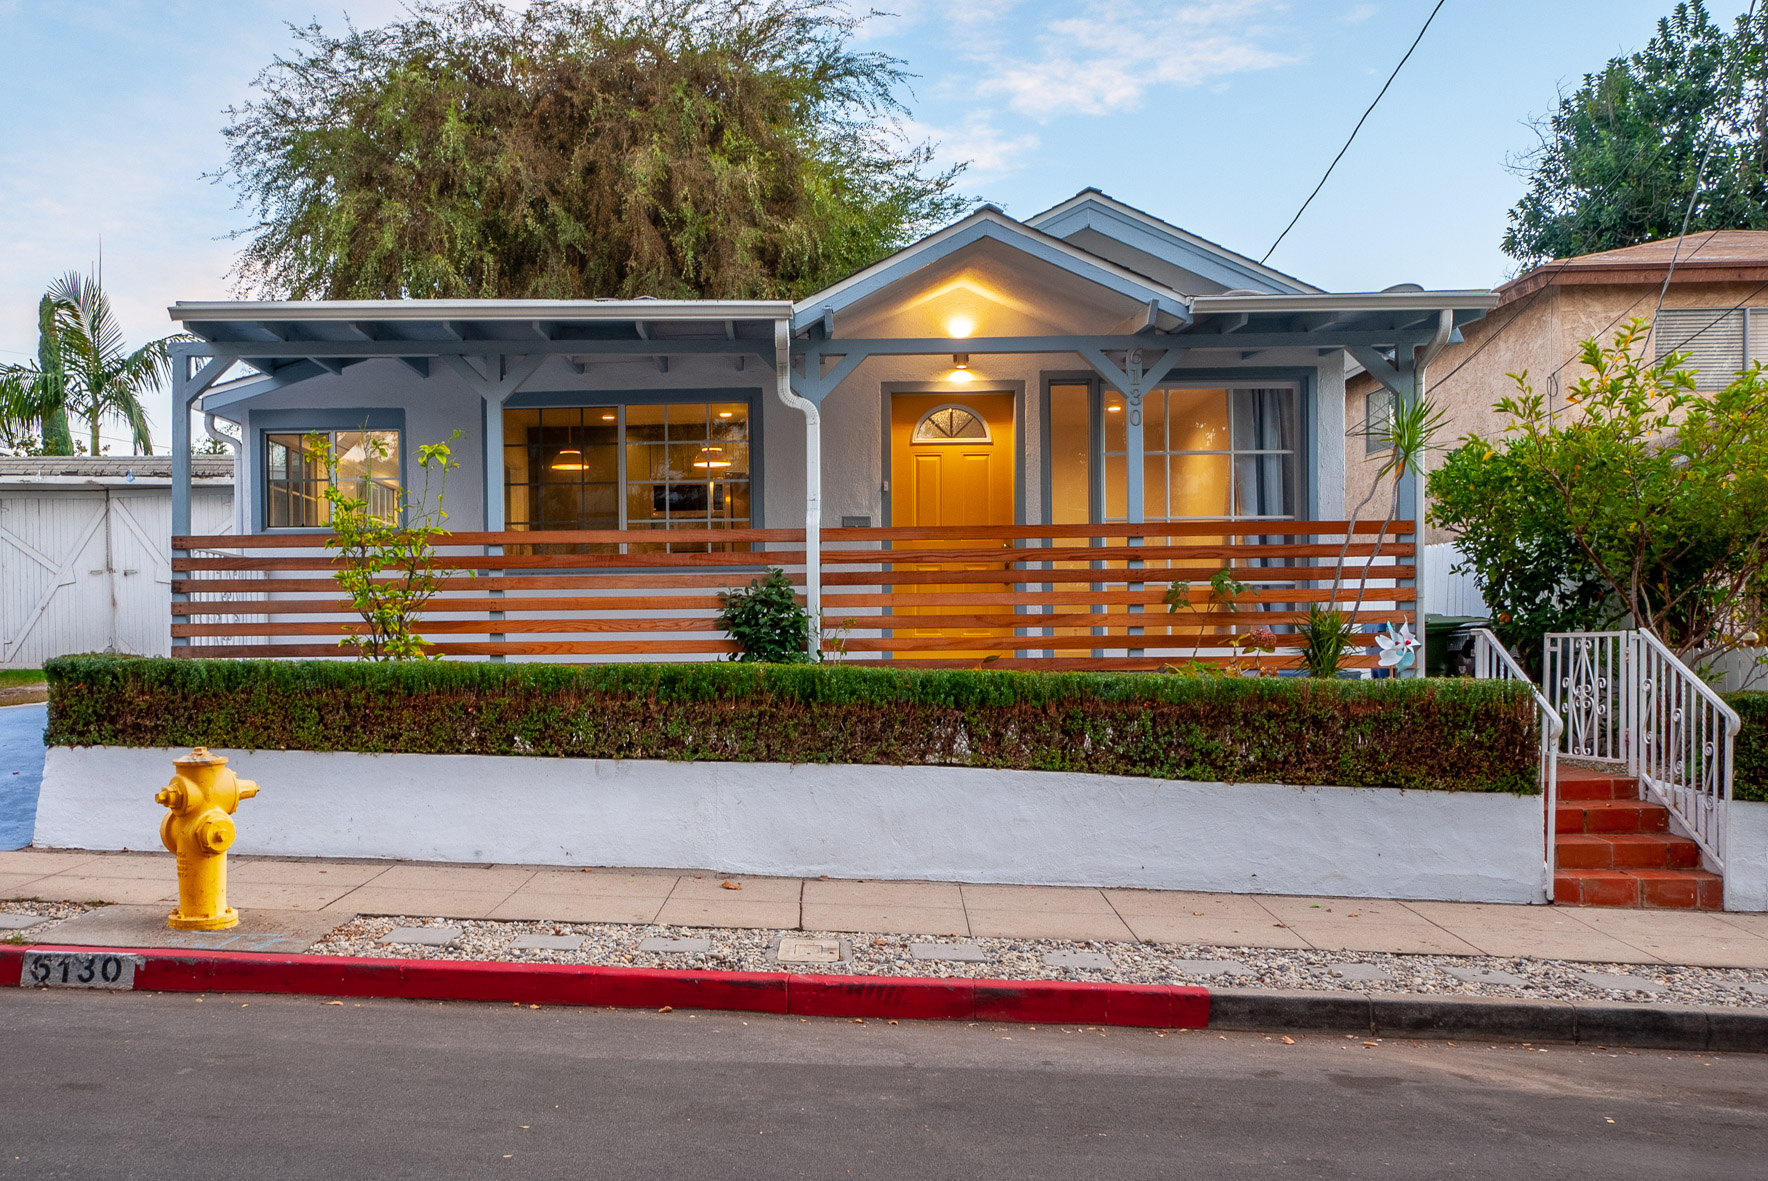 DARLING PRIVATE HOME | Right in between Highland Park and Eagle Rock | Plenty of Extra Storage and Space | Original Details with Modern Updates